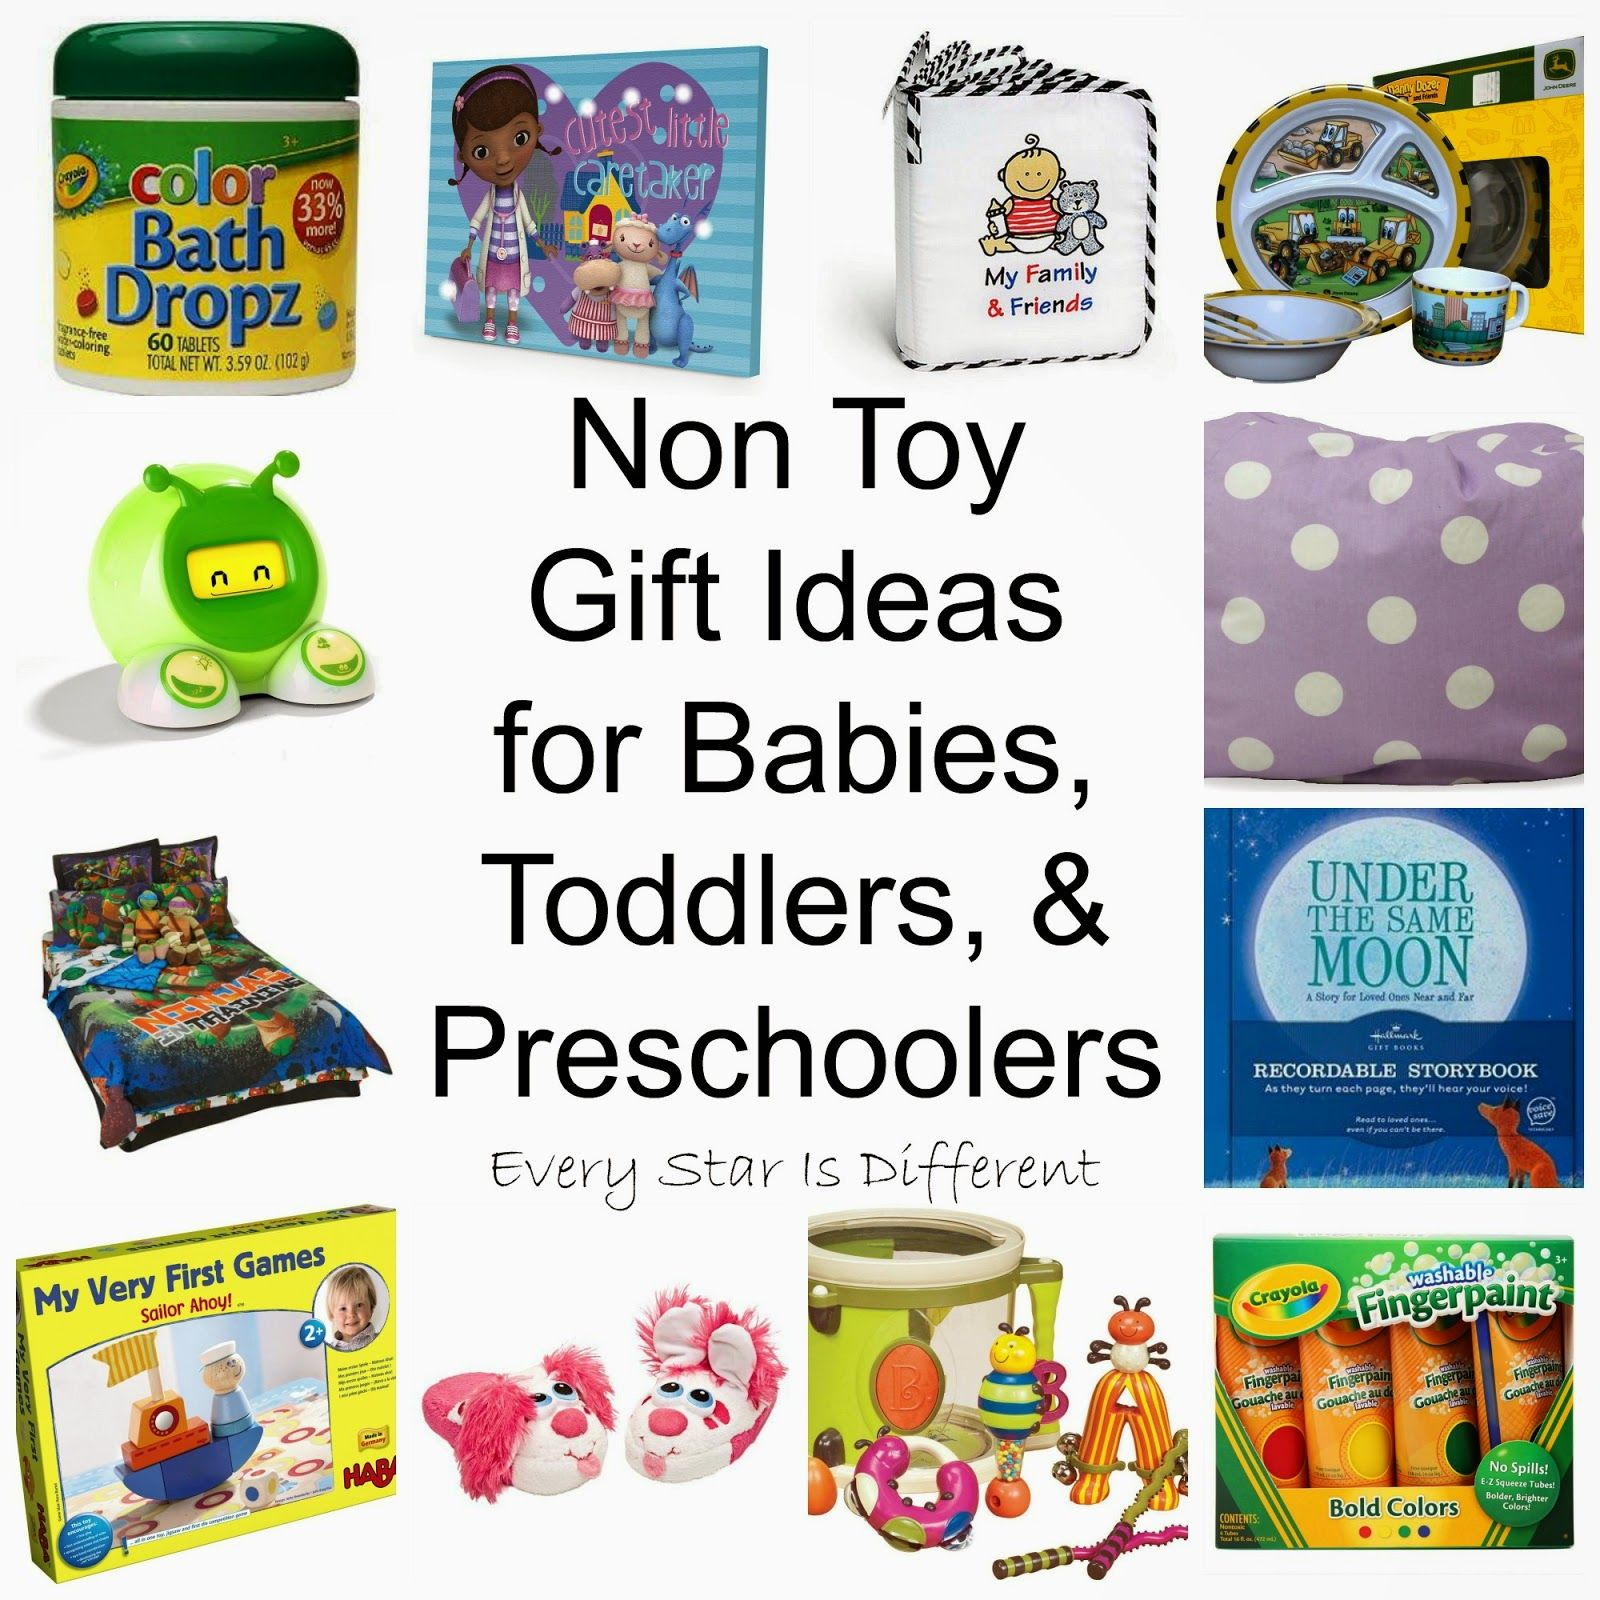 Non Toy Gift Ideas for Babies Toddlers & Preschoolers